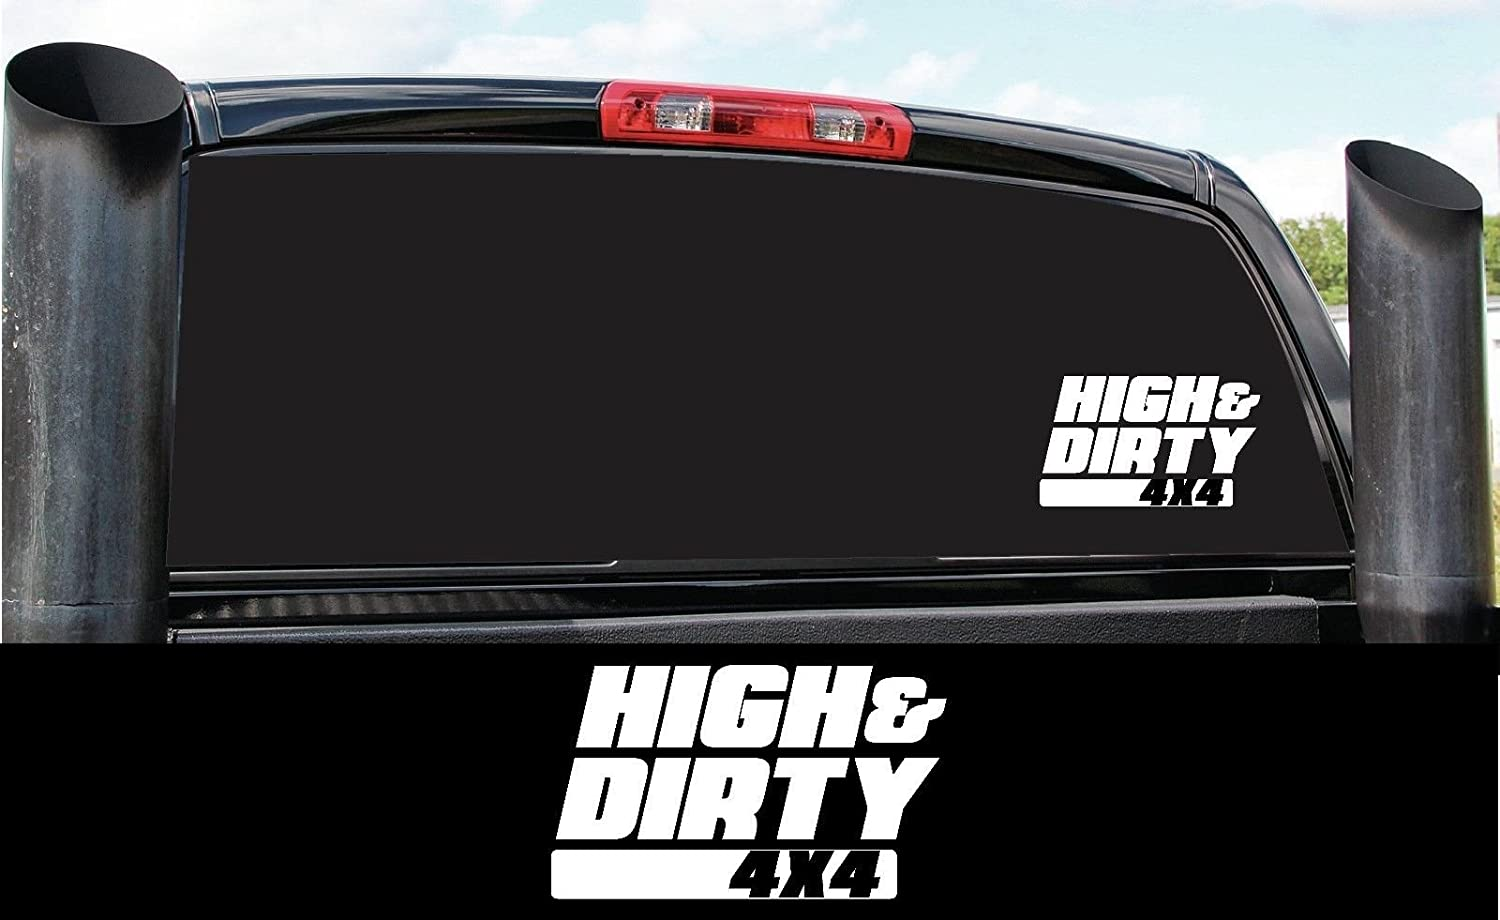 DIRTY DIESEL TRUCK VINYL DECAL STICKER MANY COLORS FREE SHIPPING